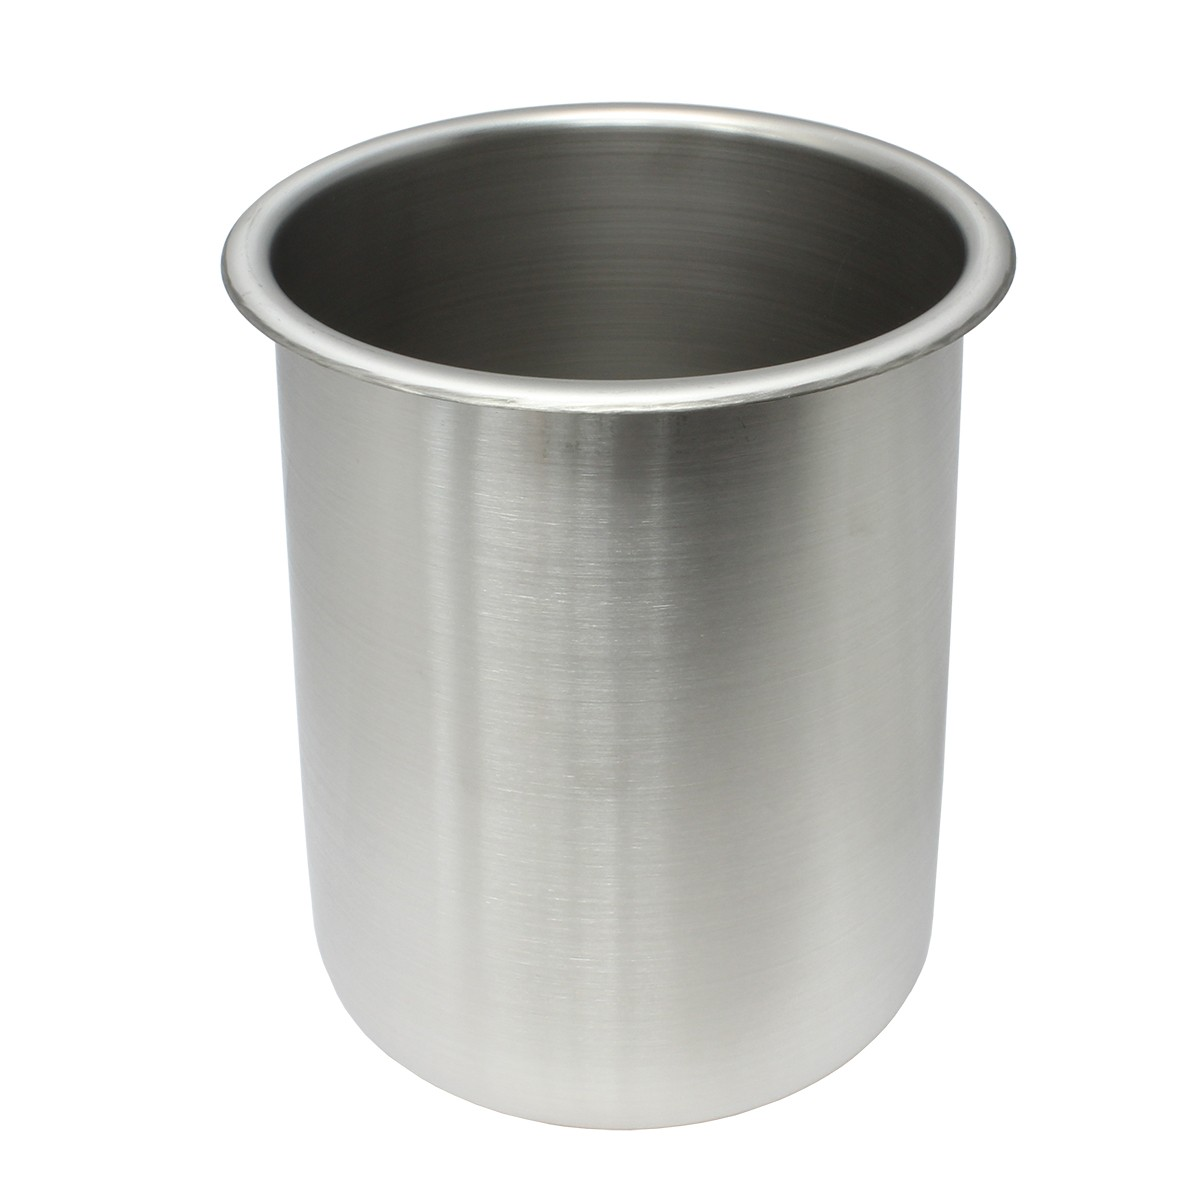 Stainless Steel Plating Tanks - 6.125 Qts